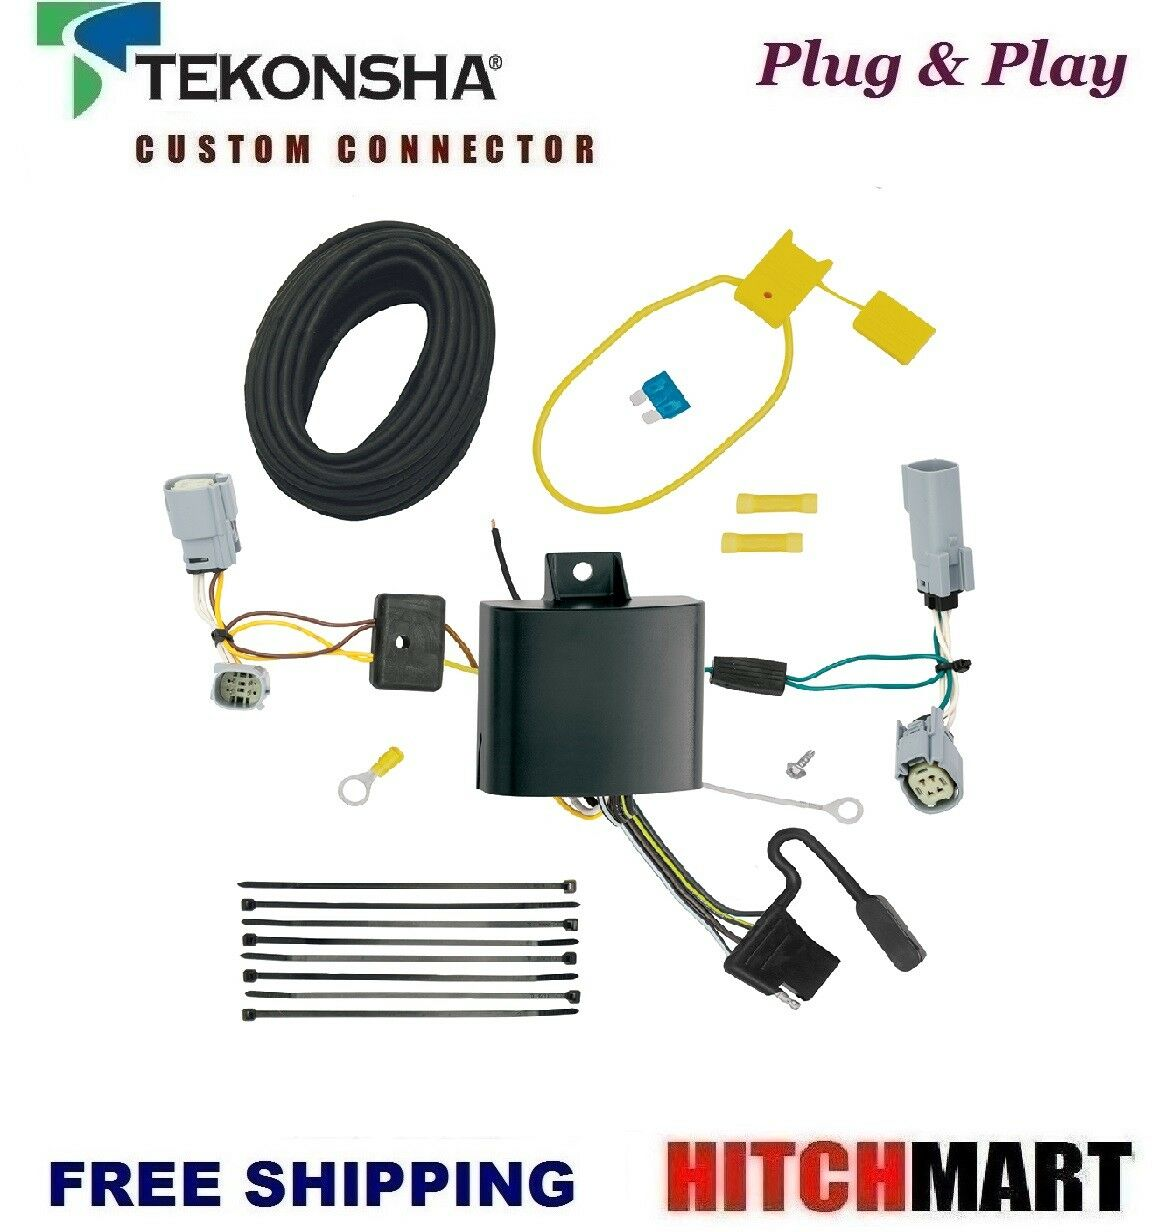 Fits 2017 2018 Chrysler Pacifica Lx Touring Trailer Hitch Tow Wiring Harness 1 Of 1free Shipping